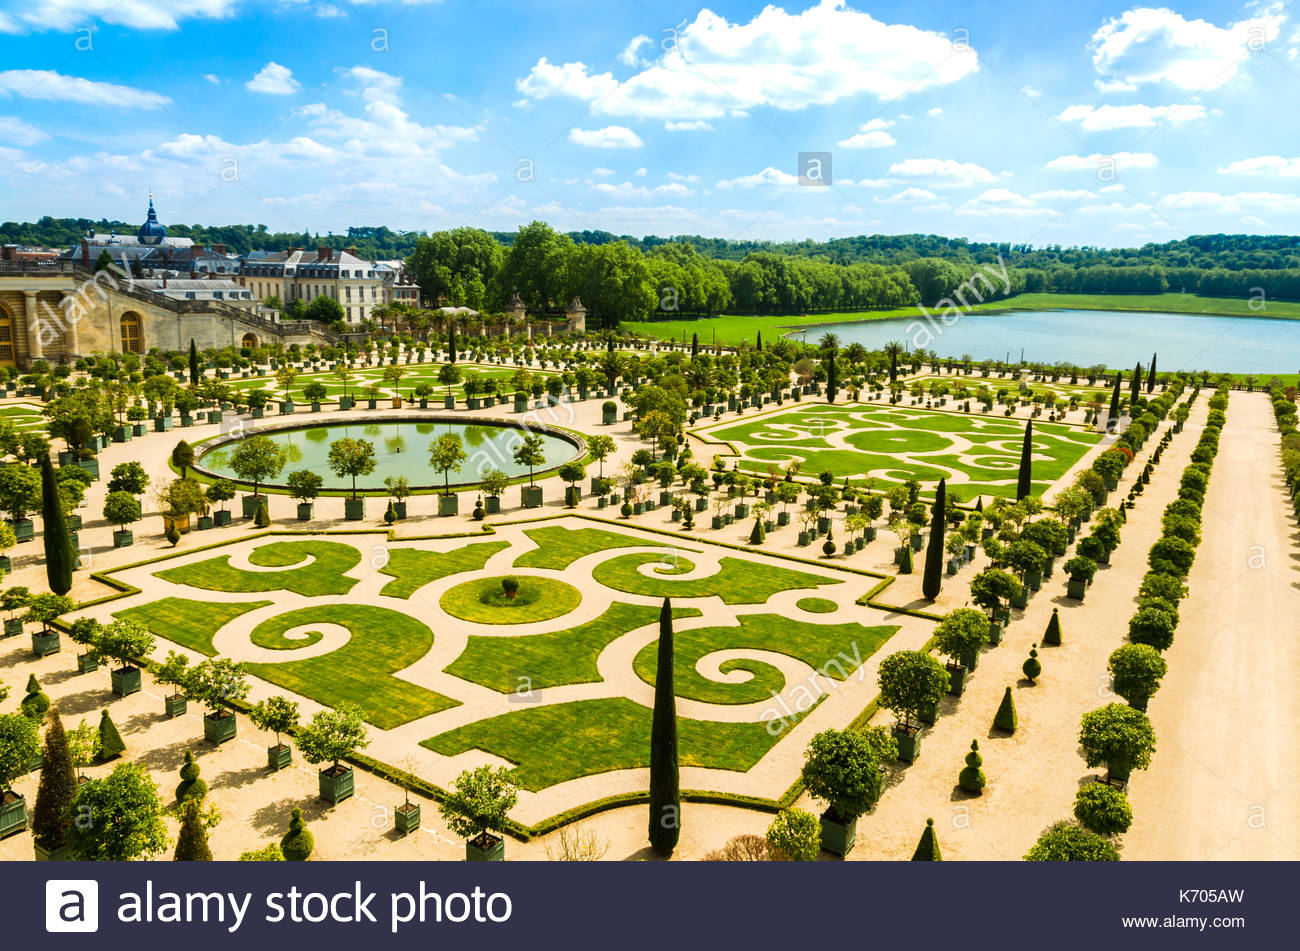 versailles france gardens of the versailles palace near paris france K705AW